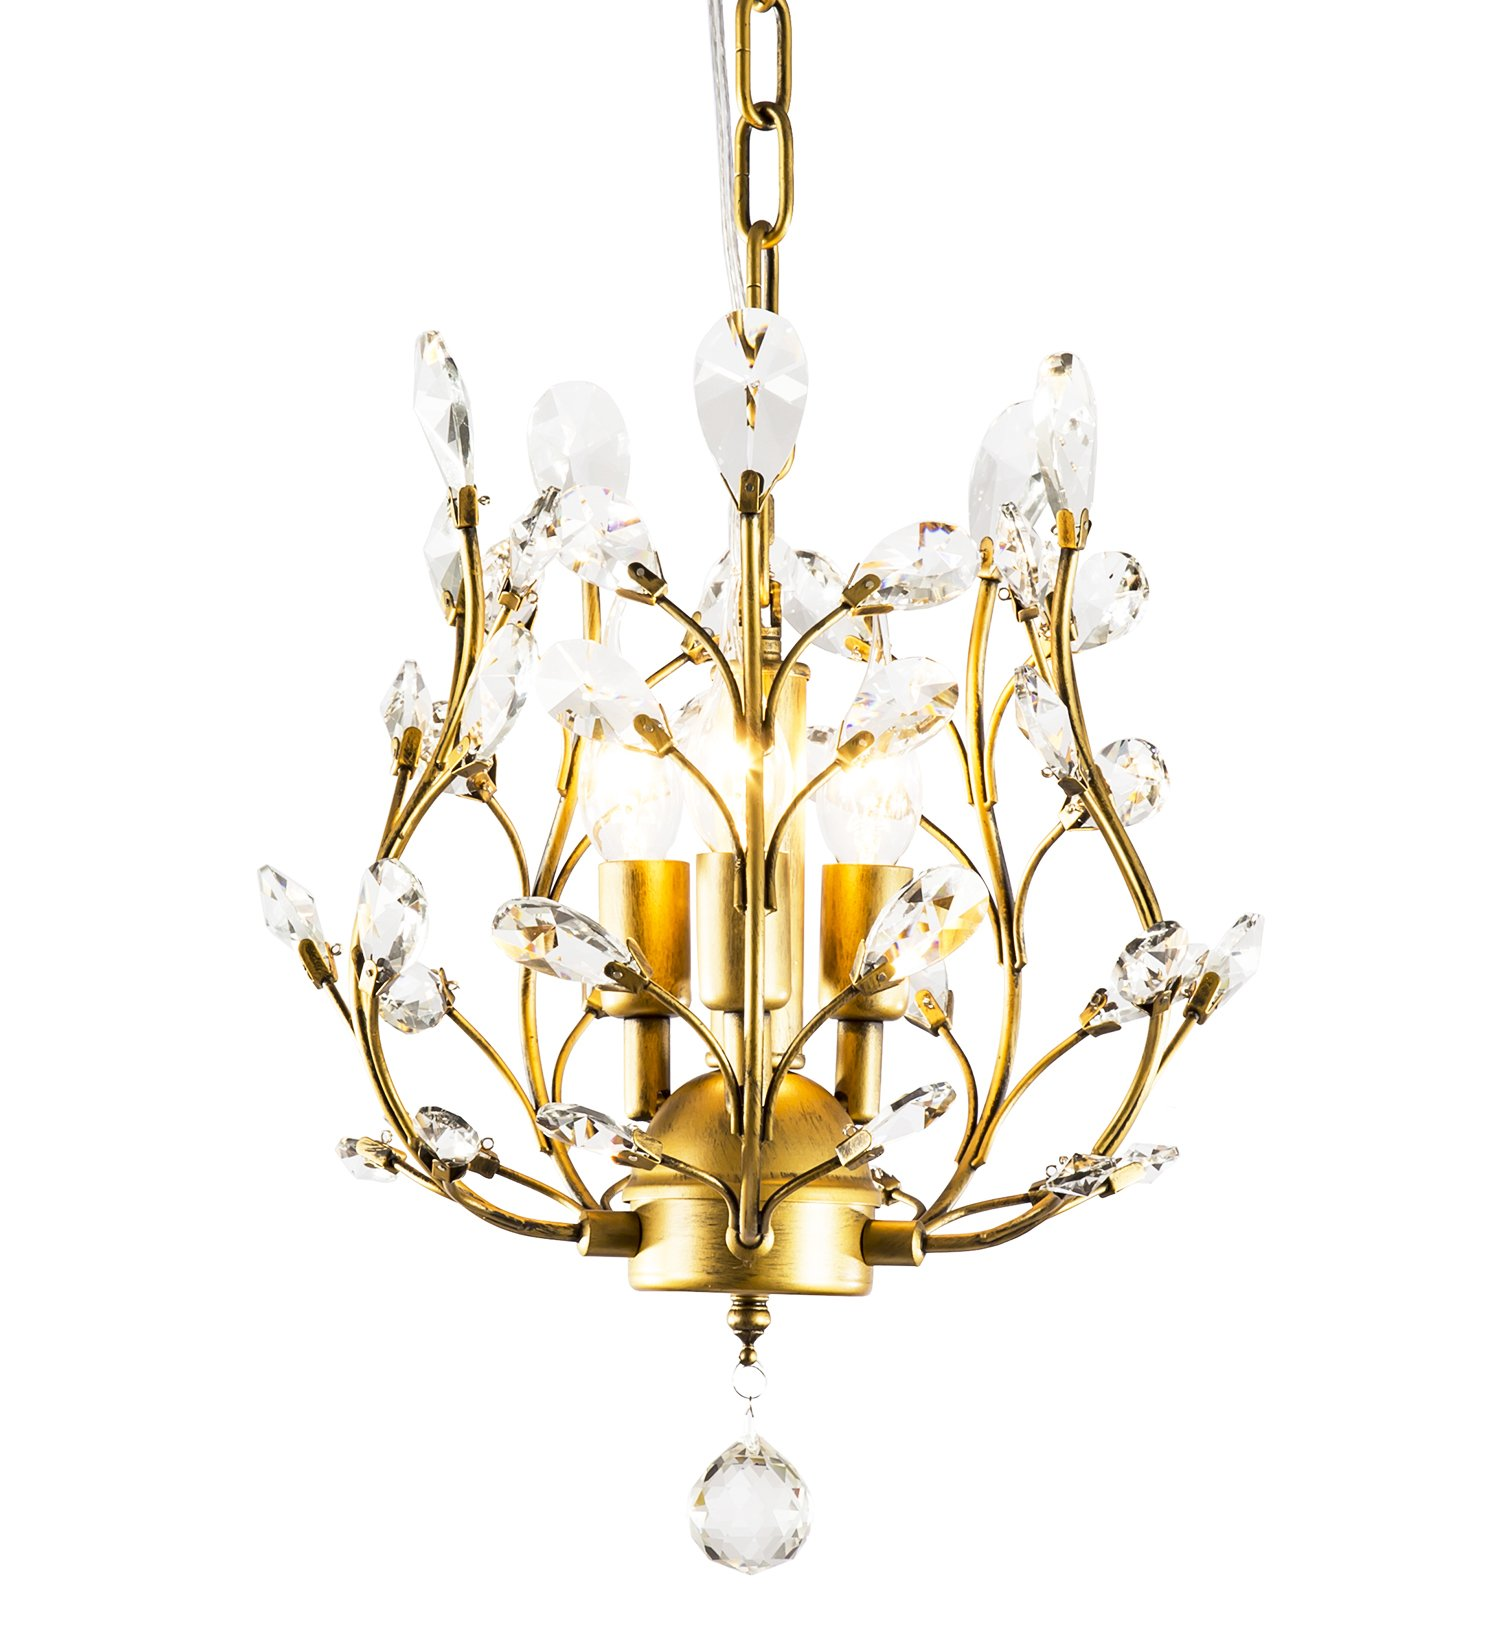 LuFun Modern Crystal Chandeliers,Crystal Pendant Light,Chandelier Lighting Fixtures,Ceiling Light for Living Room Bedroom Restaurant Hallway (Bronze)